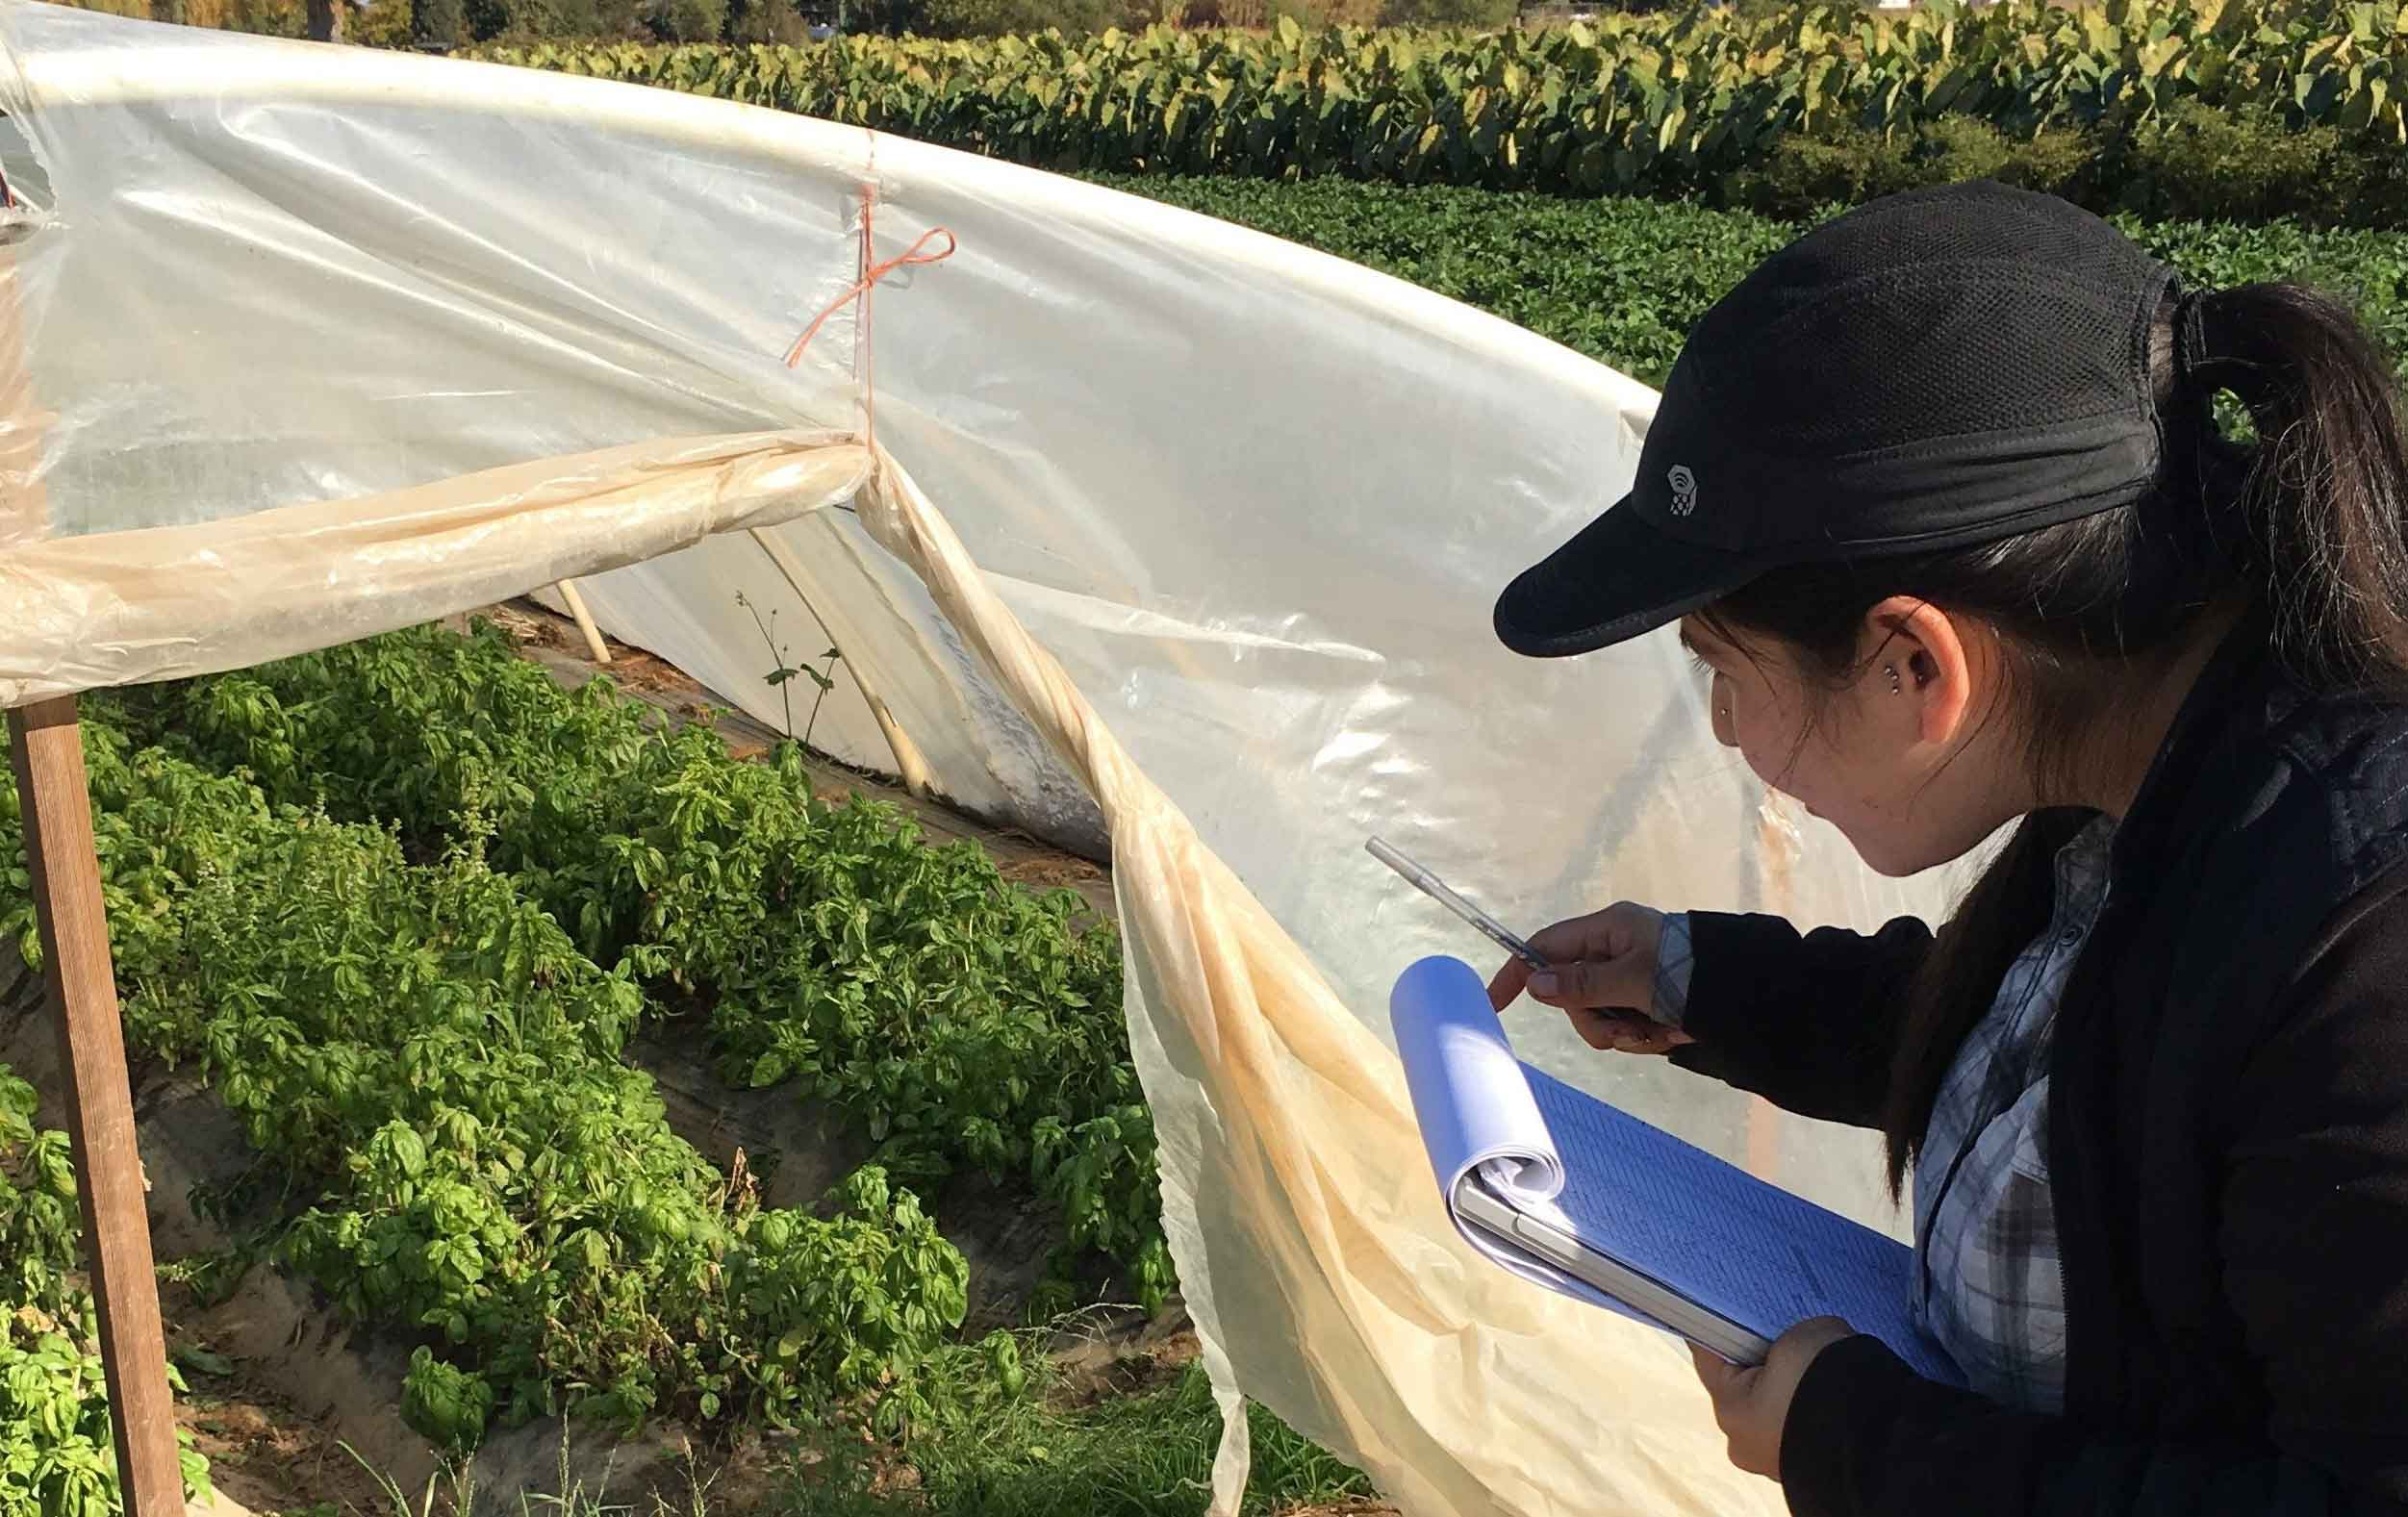 A woman holds a clipboard and looks into a greenhouse